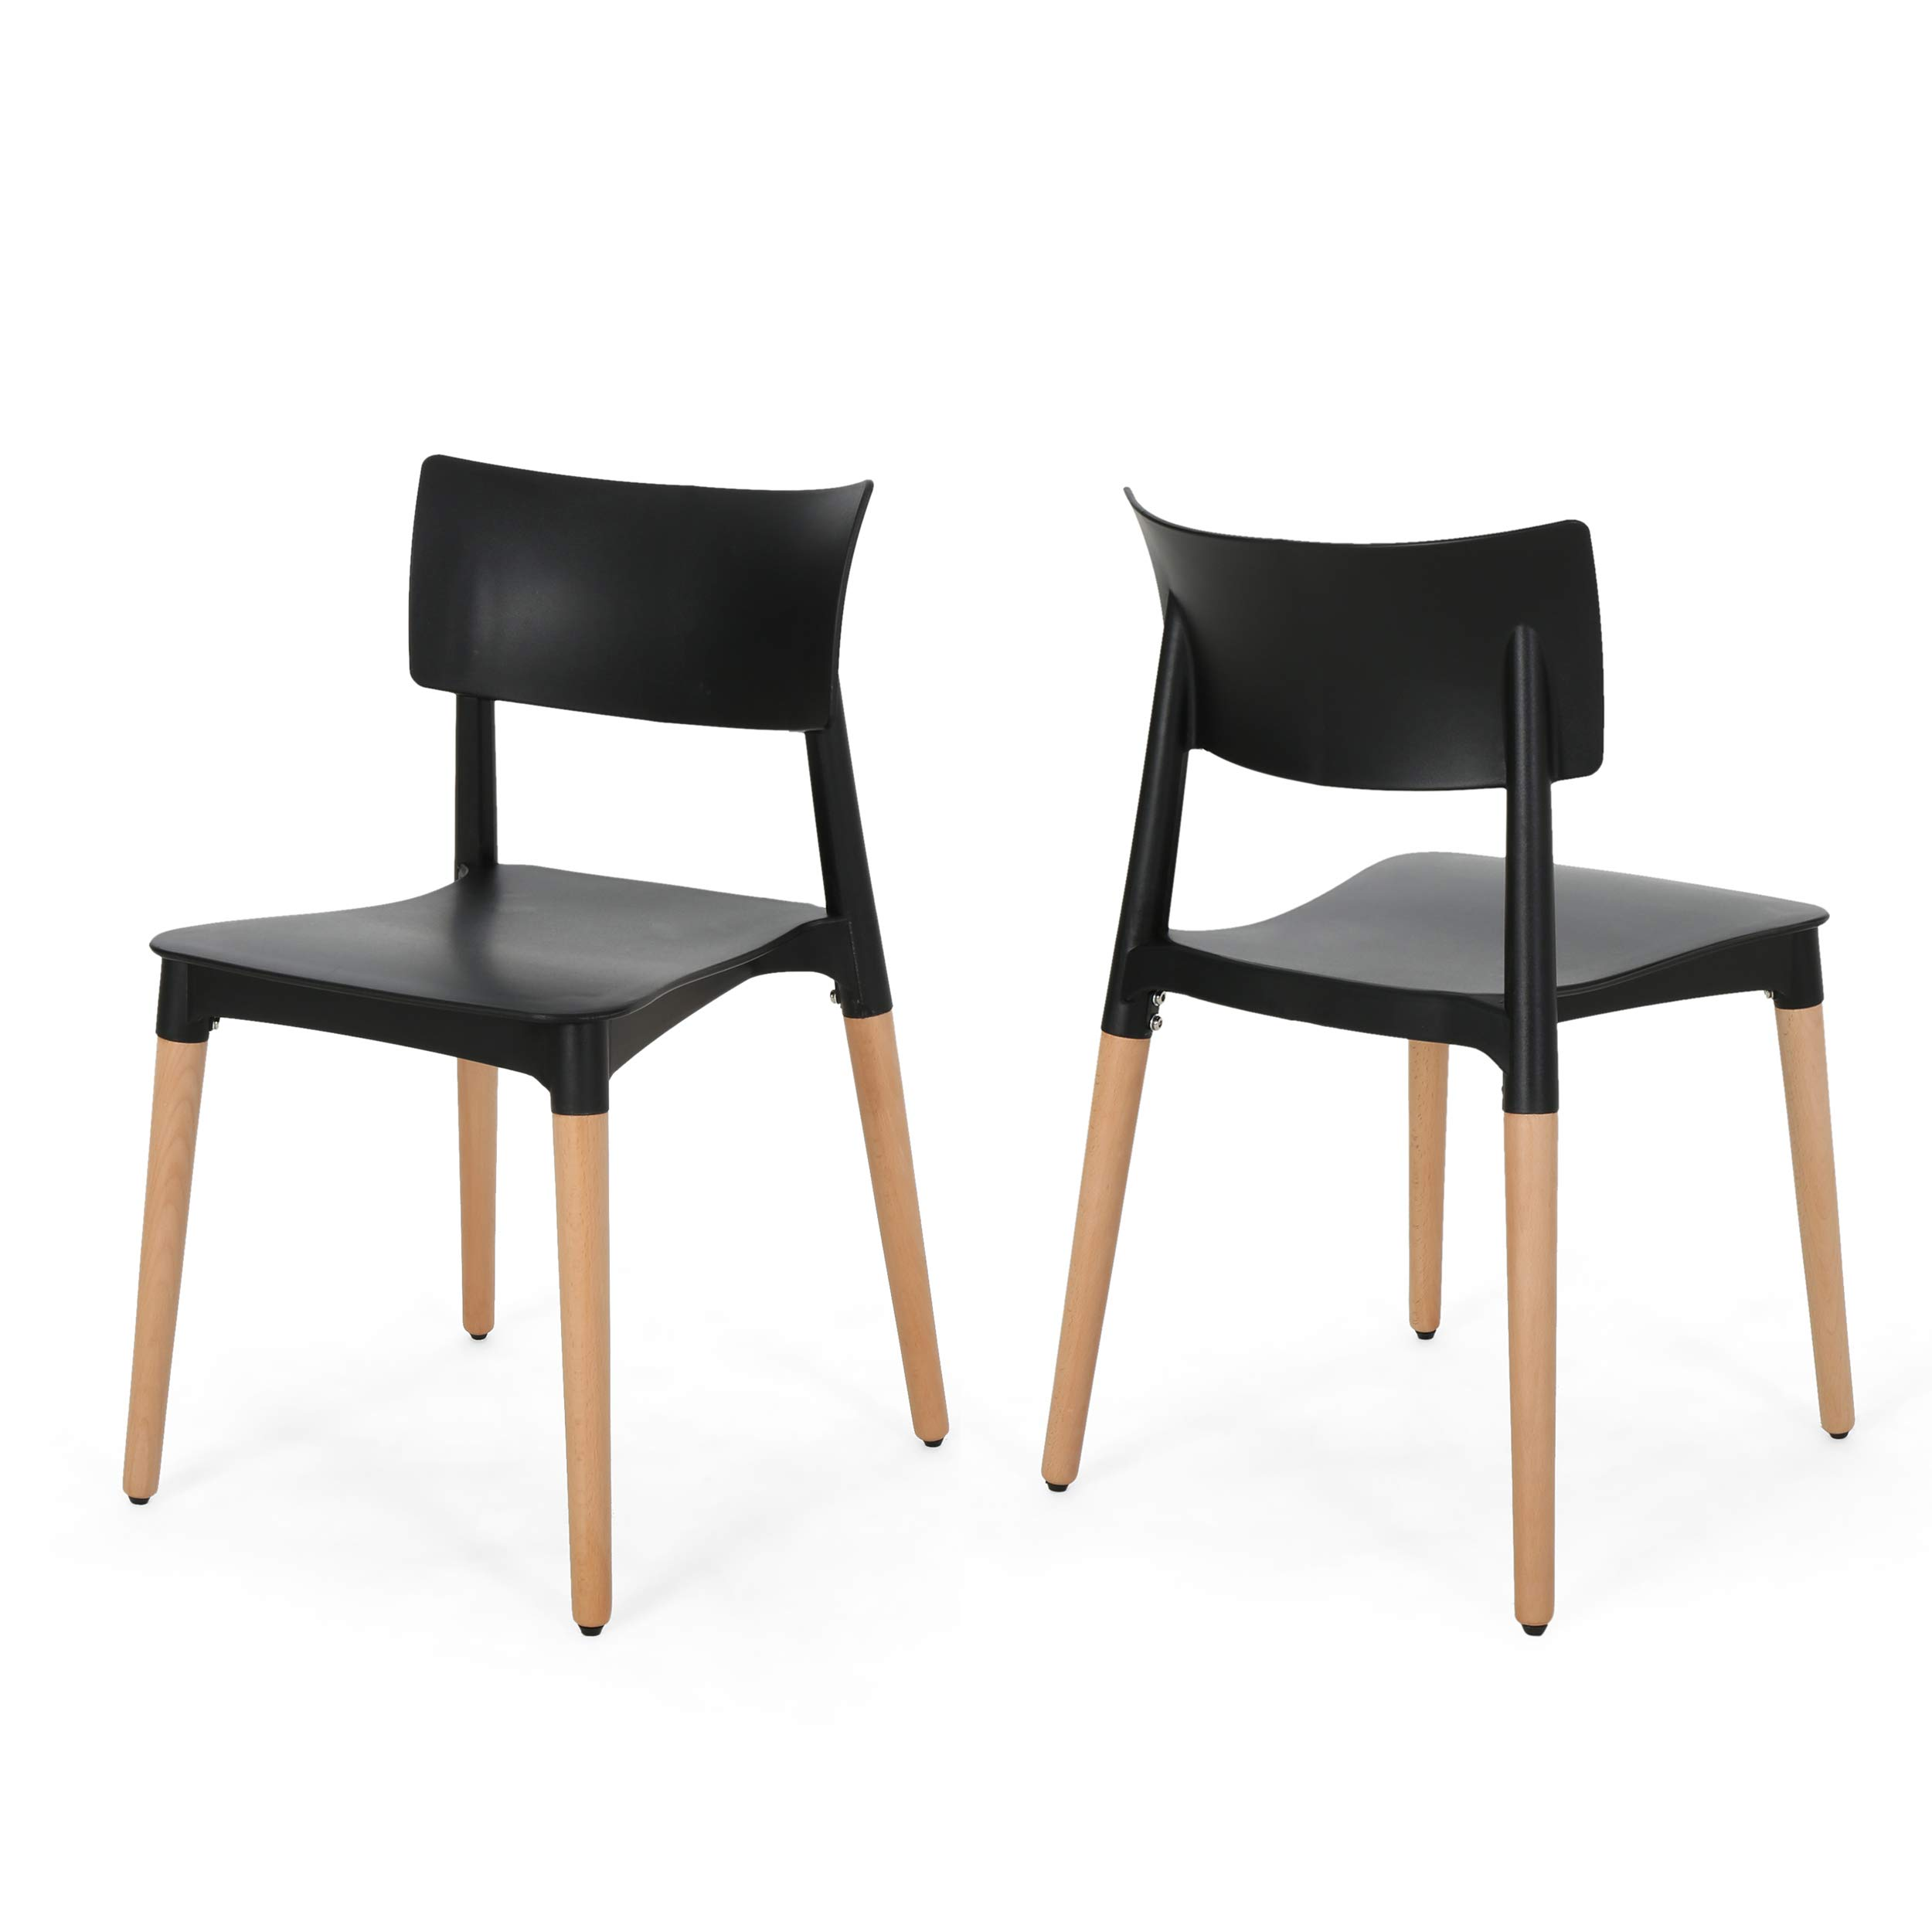 Christopher Knight Home Isabel Modern Dining Chair with Beech Wood Legs (Set of 2), Black and Natural